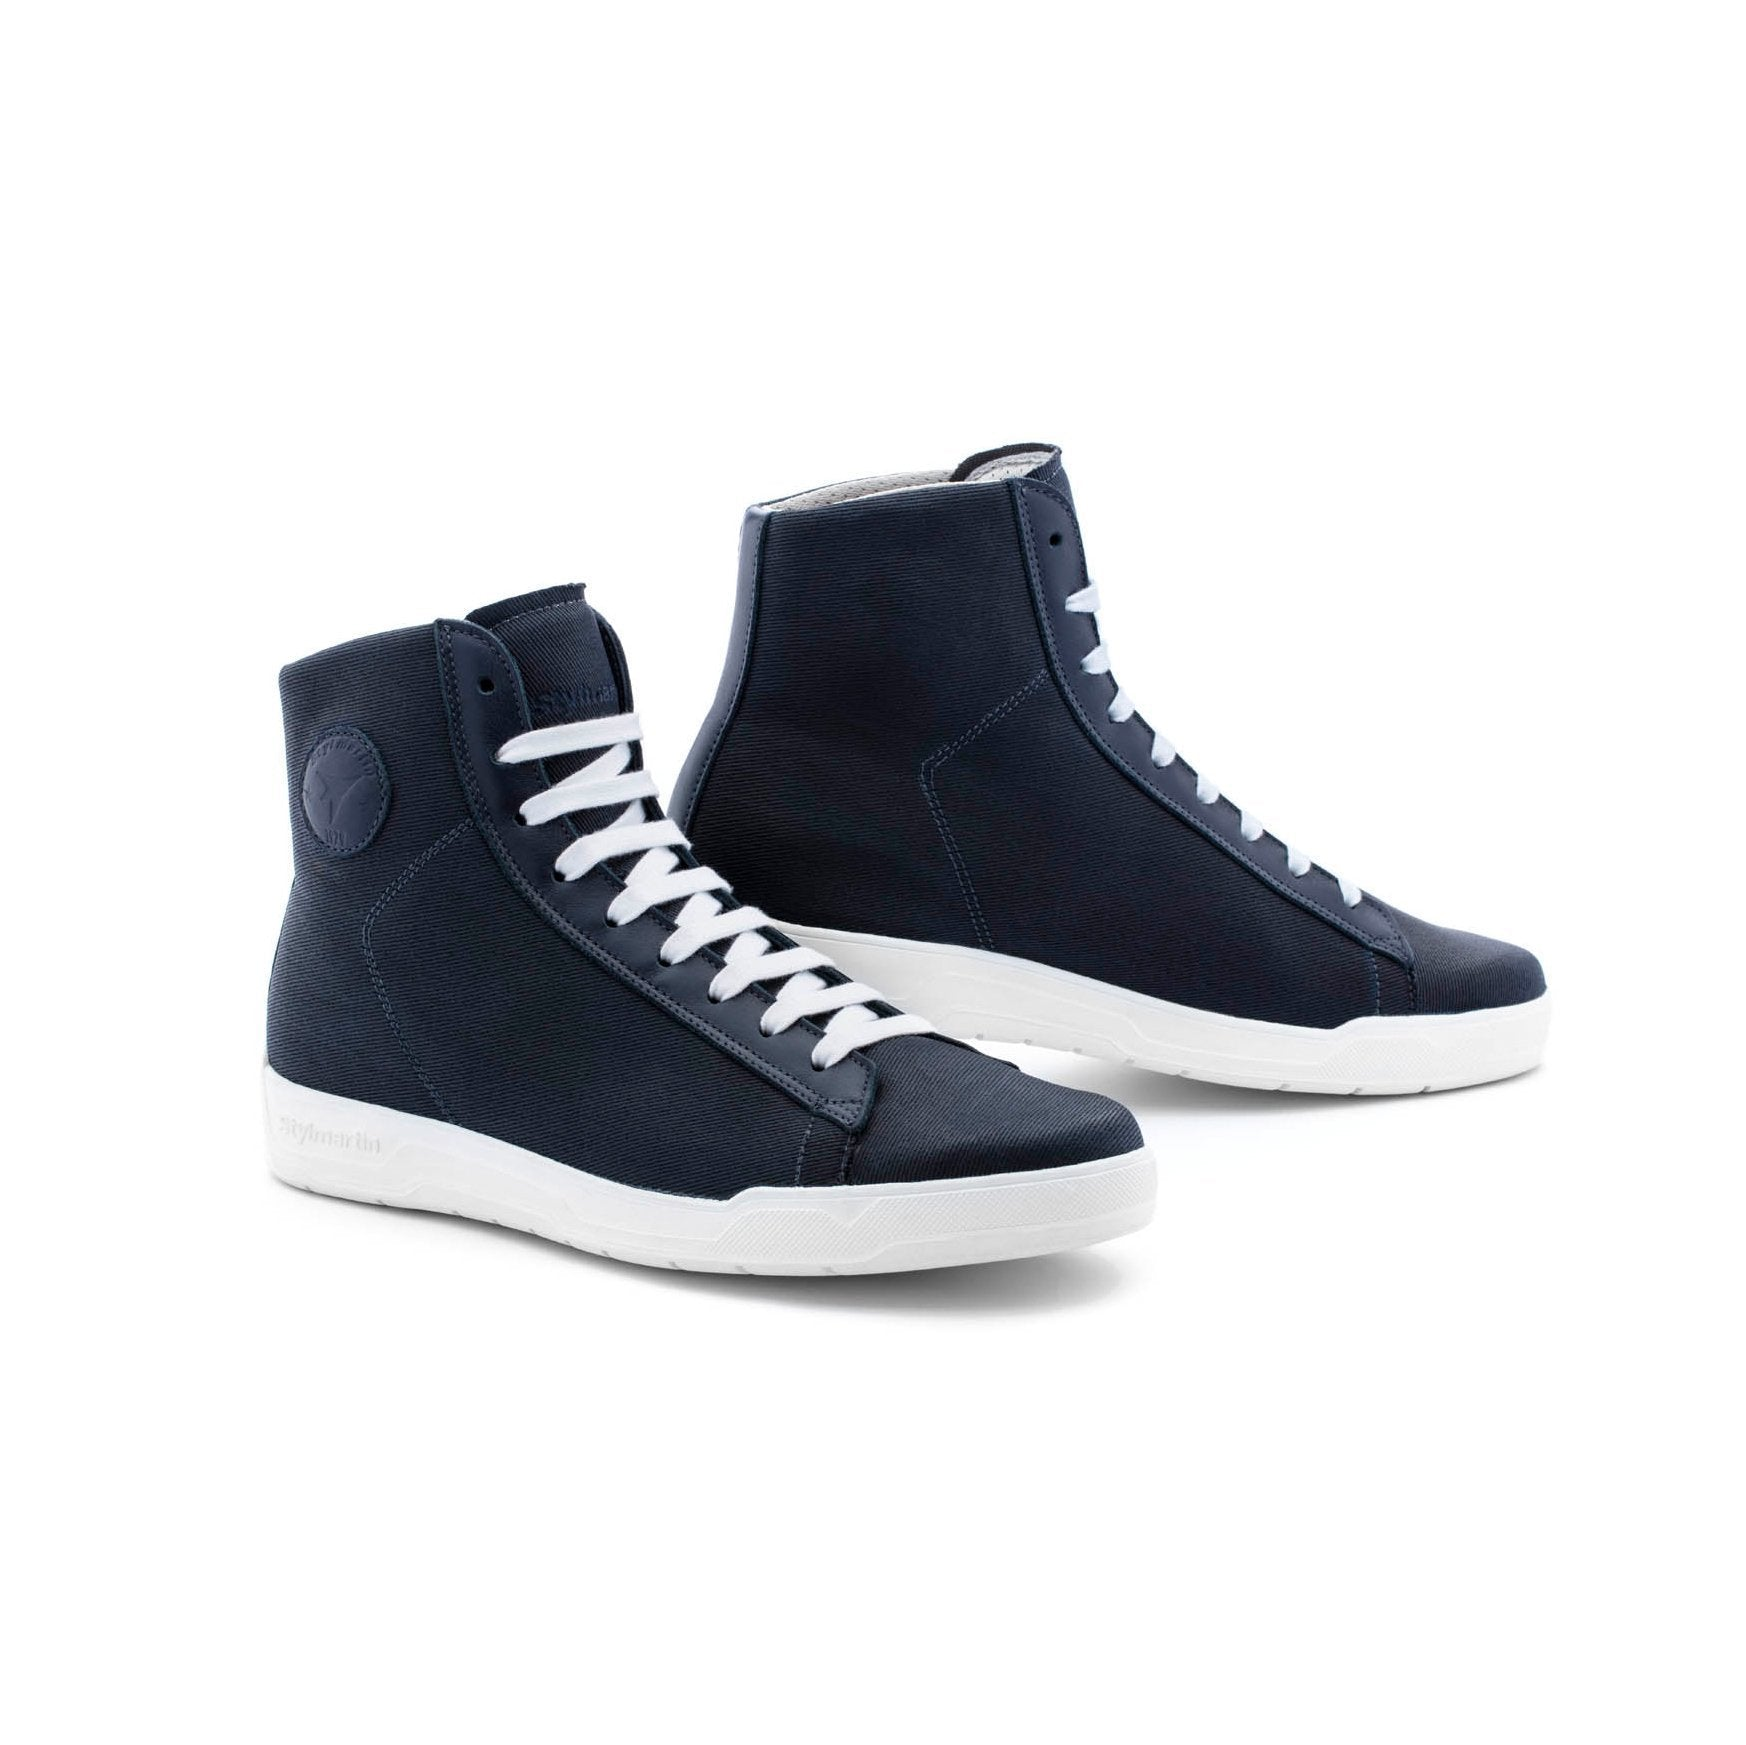 Stylmartin - Stylmartin Grid Sneaker in Blue - Boots - Salt Flats Clothing